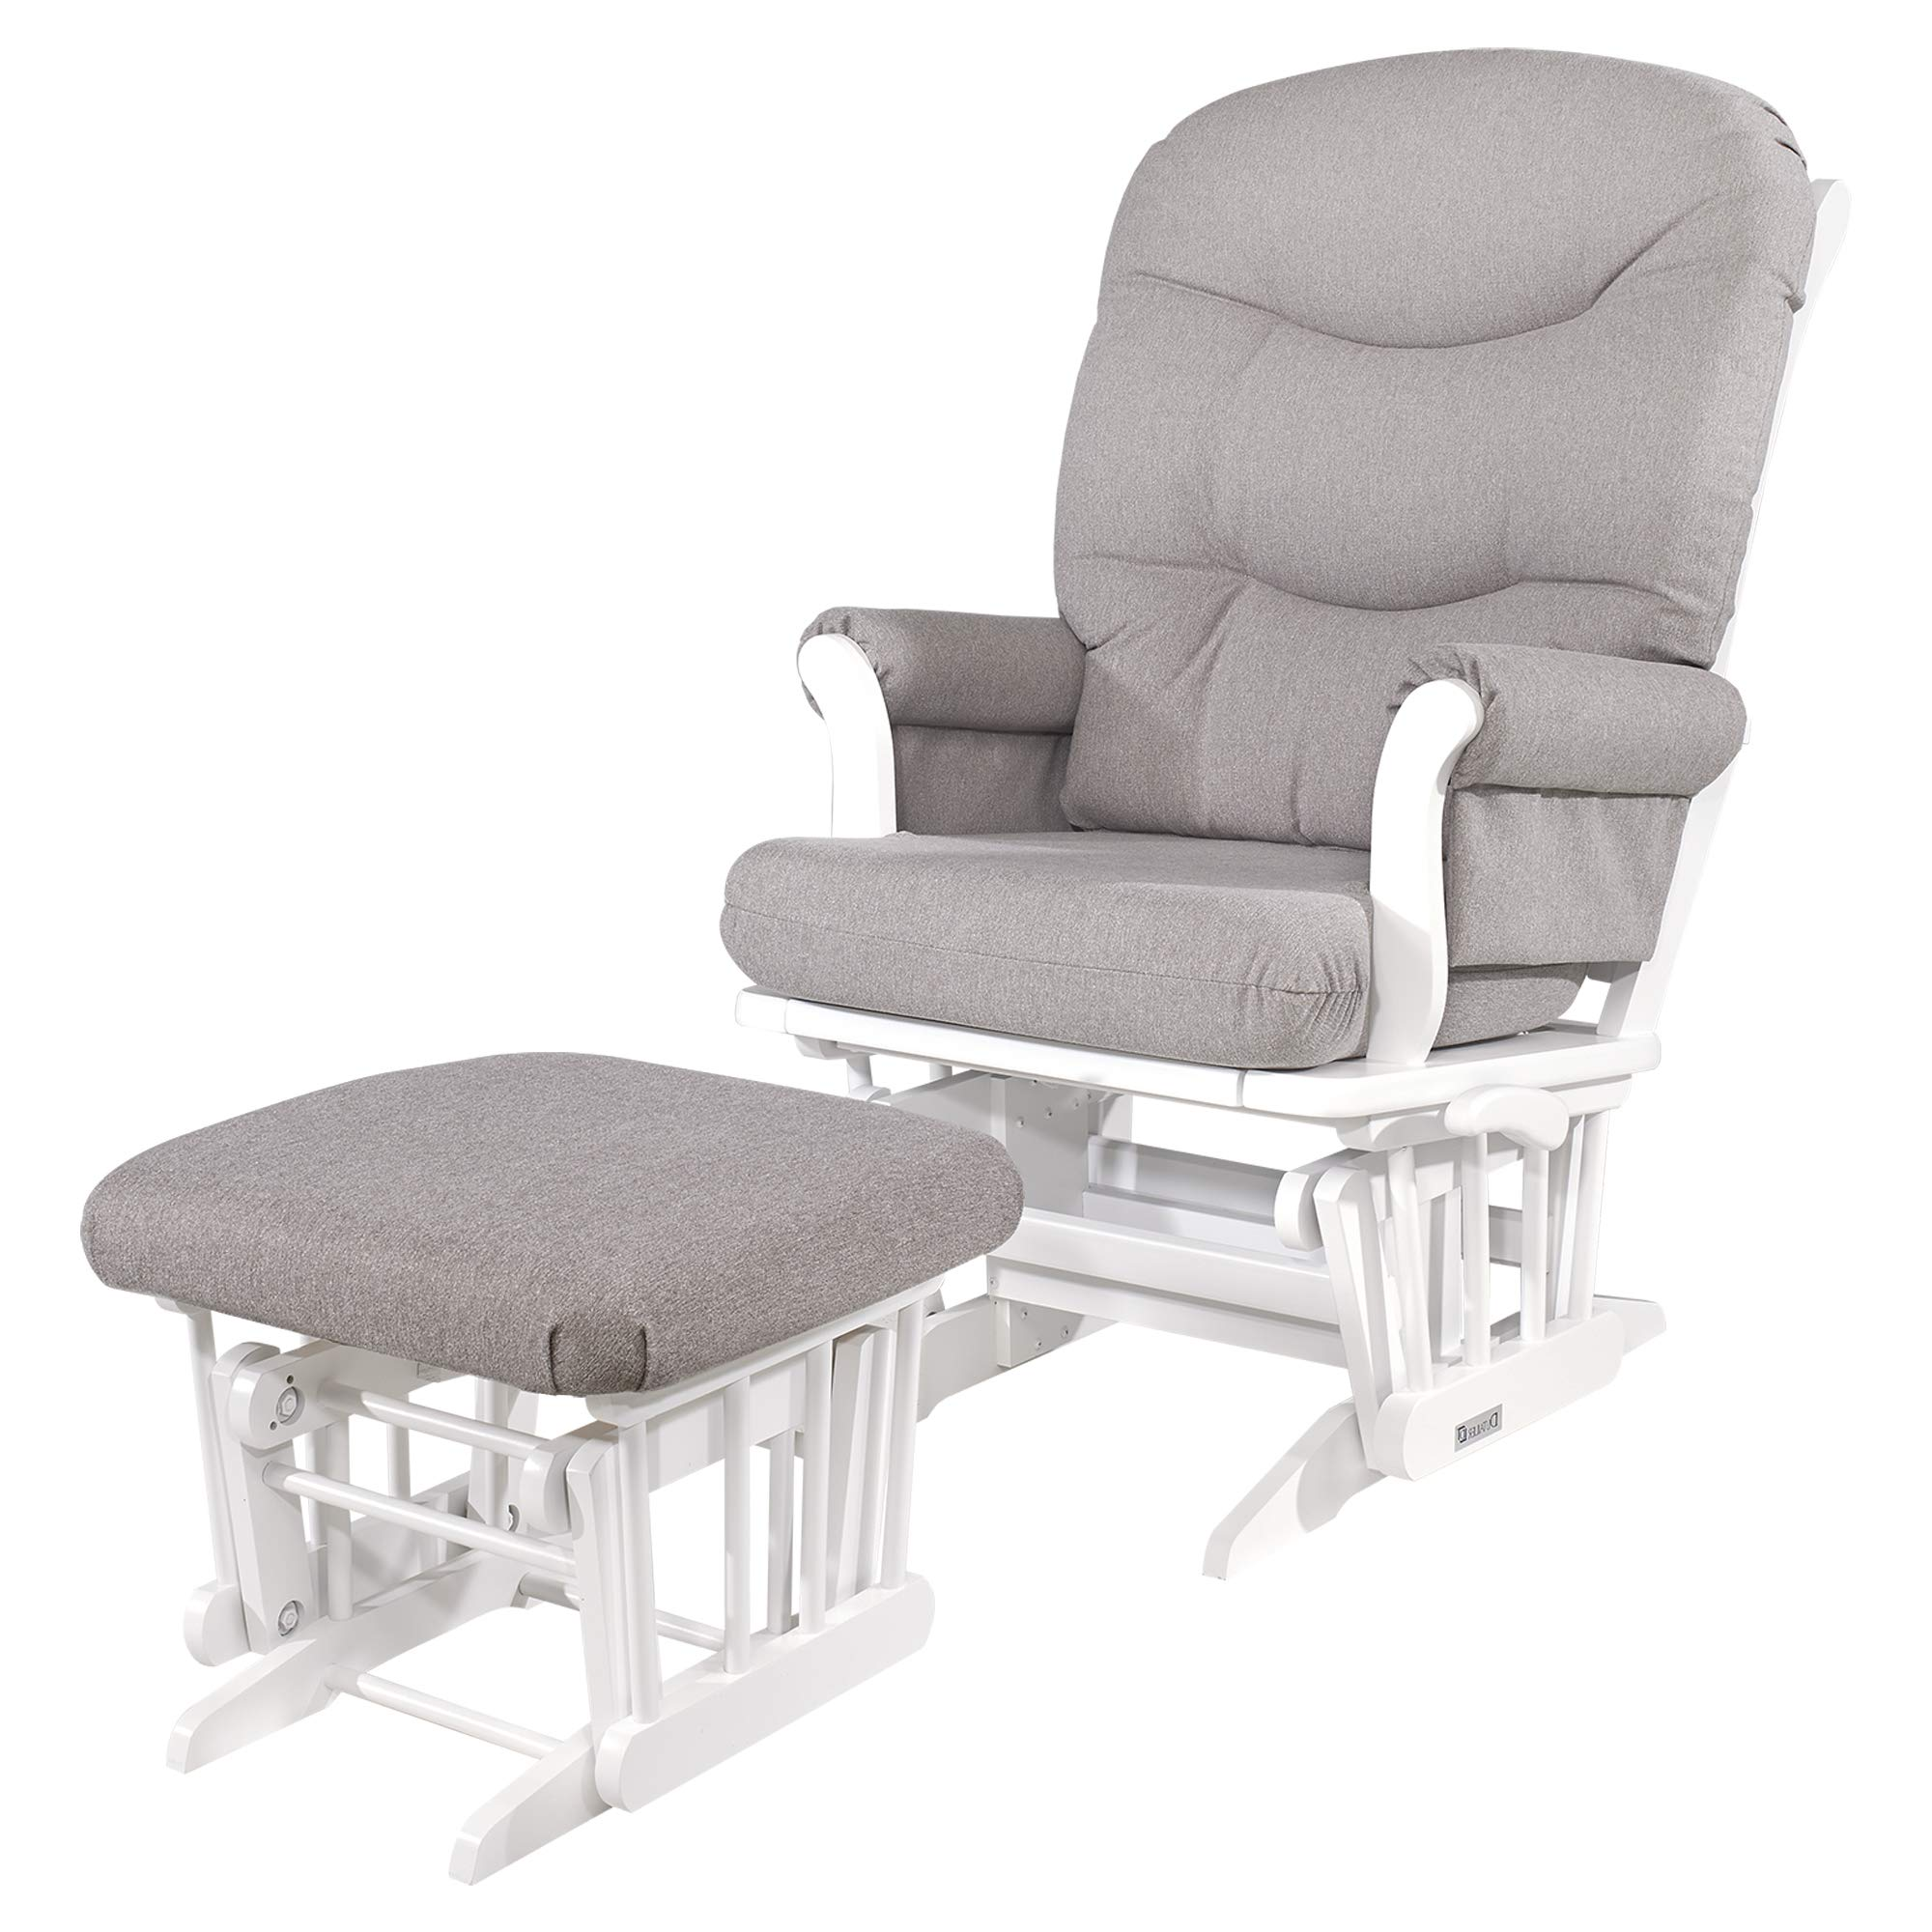 Dutailier SLEIGH 0367 Glider Multiposition-lock Recline with Ottoman Included by Dutailier